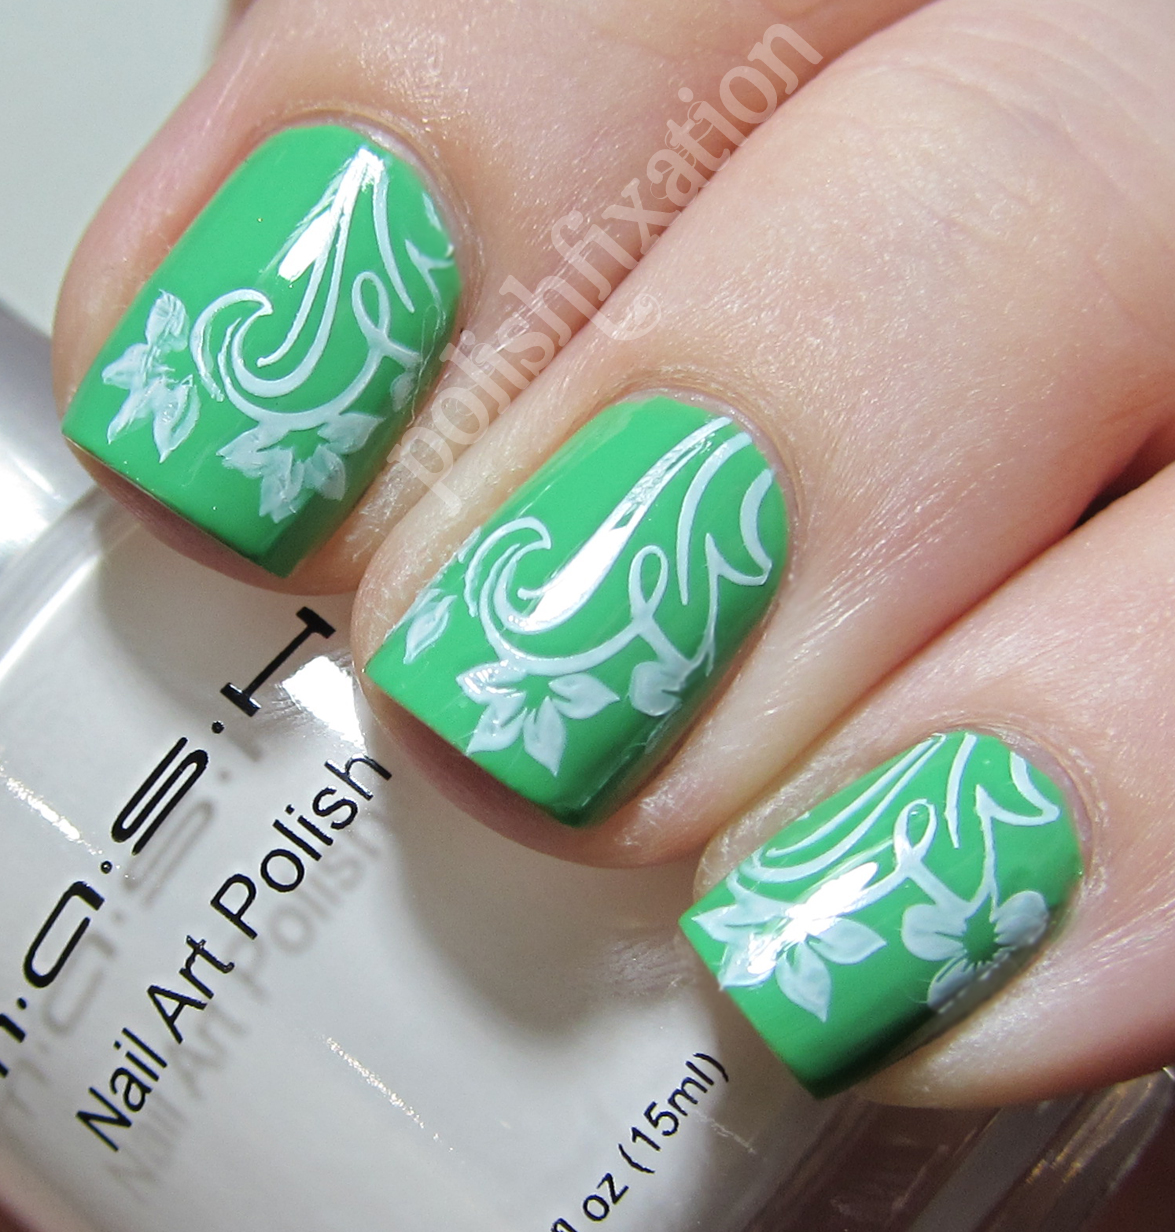 polish fixation: Mash Nails White Stamping Polish